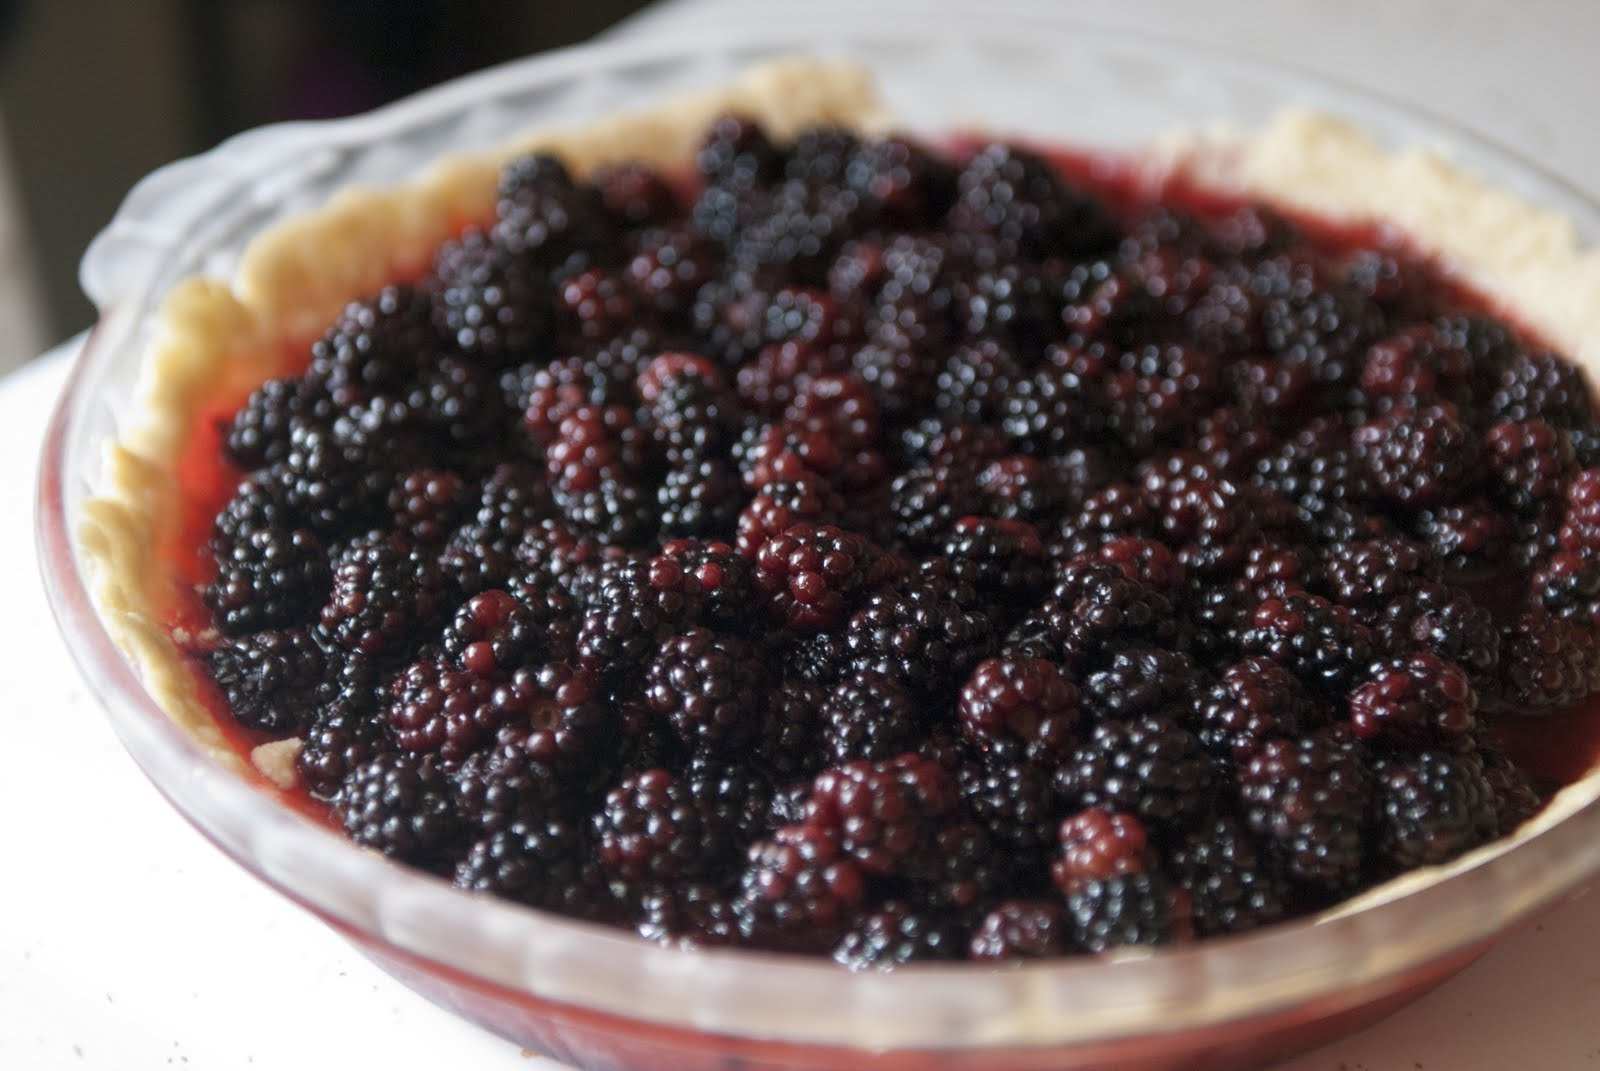 Pie images Blackberry Pie HD wallpaper and background ...